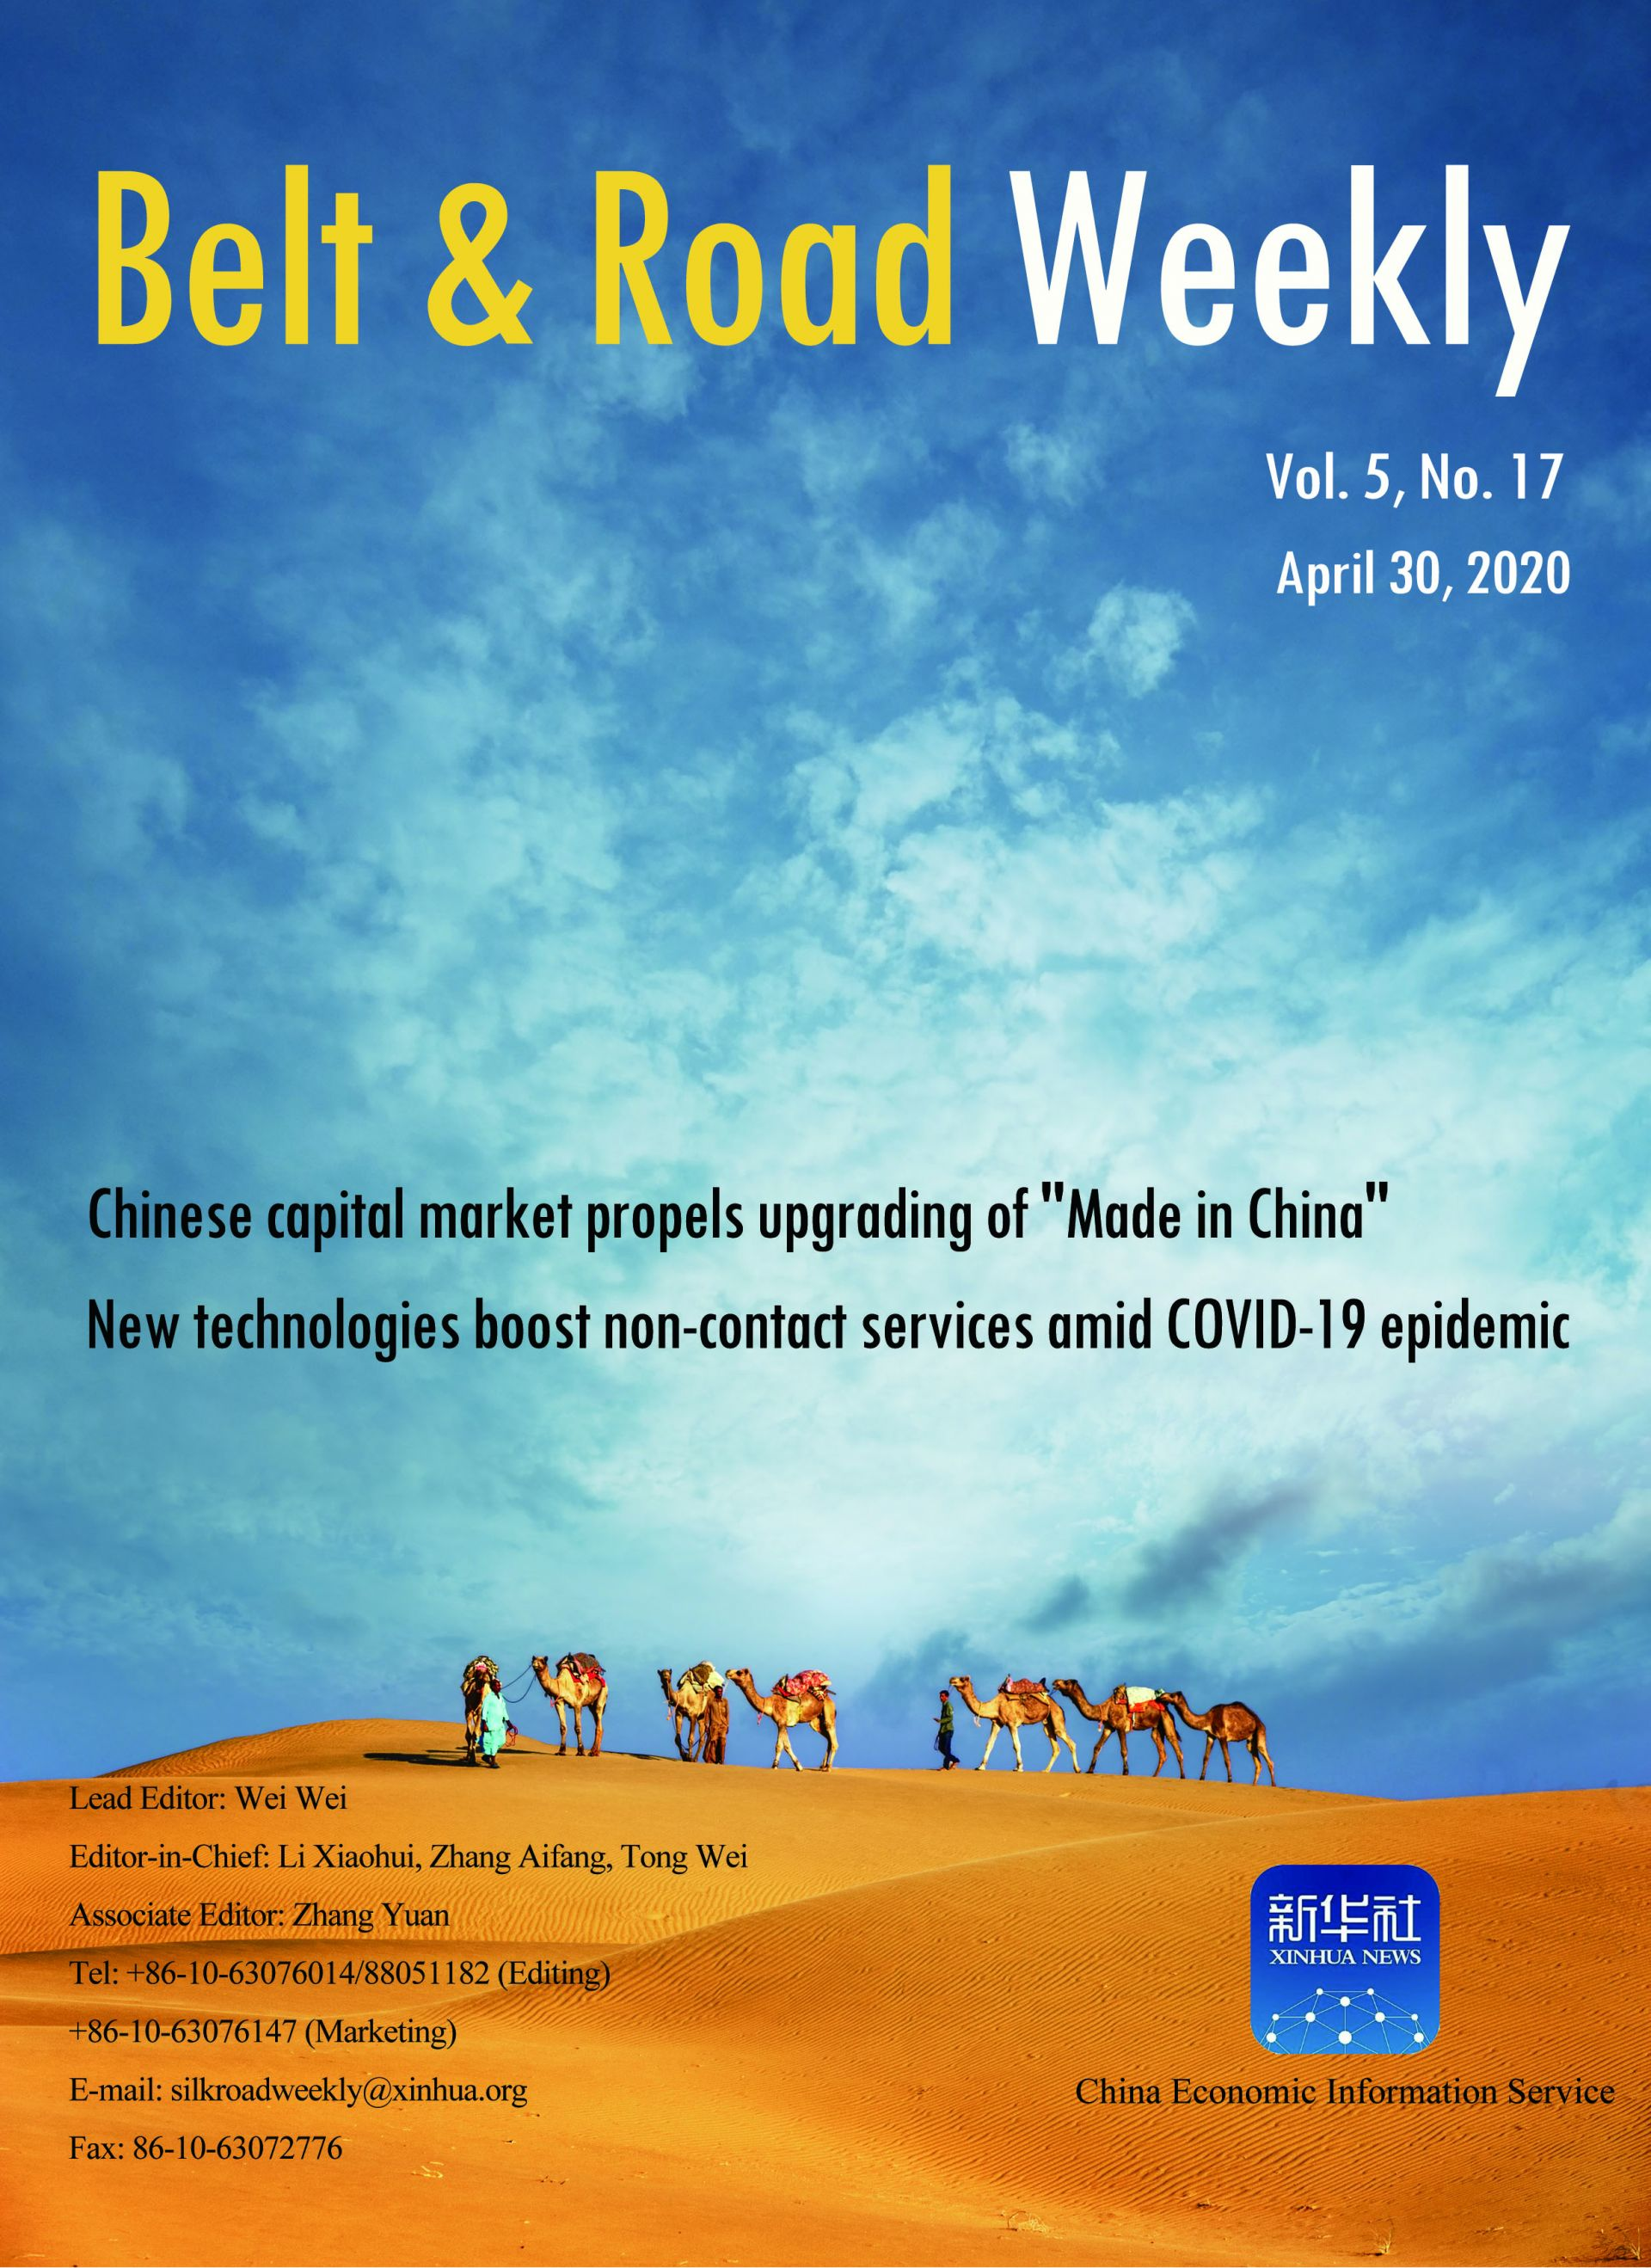 Belt & Road Weekly Vol. 5 No. 17